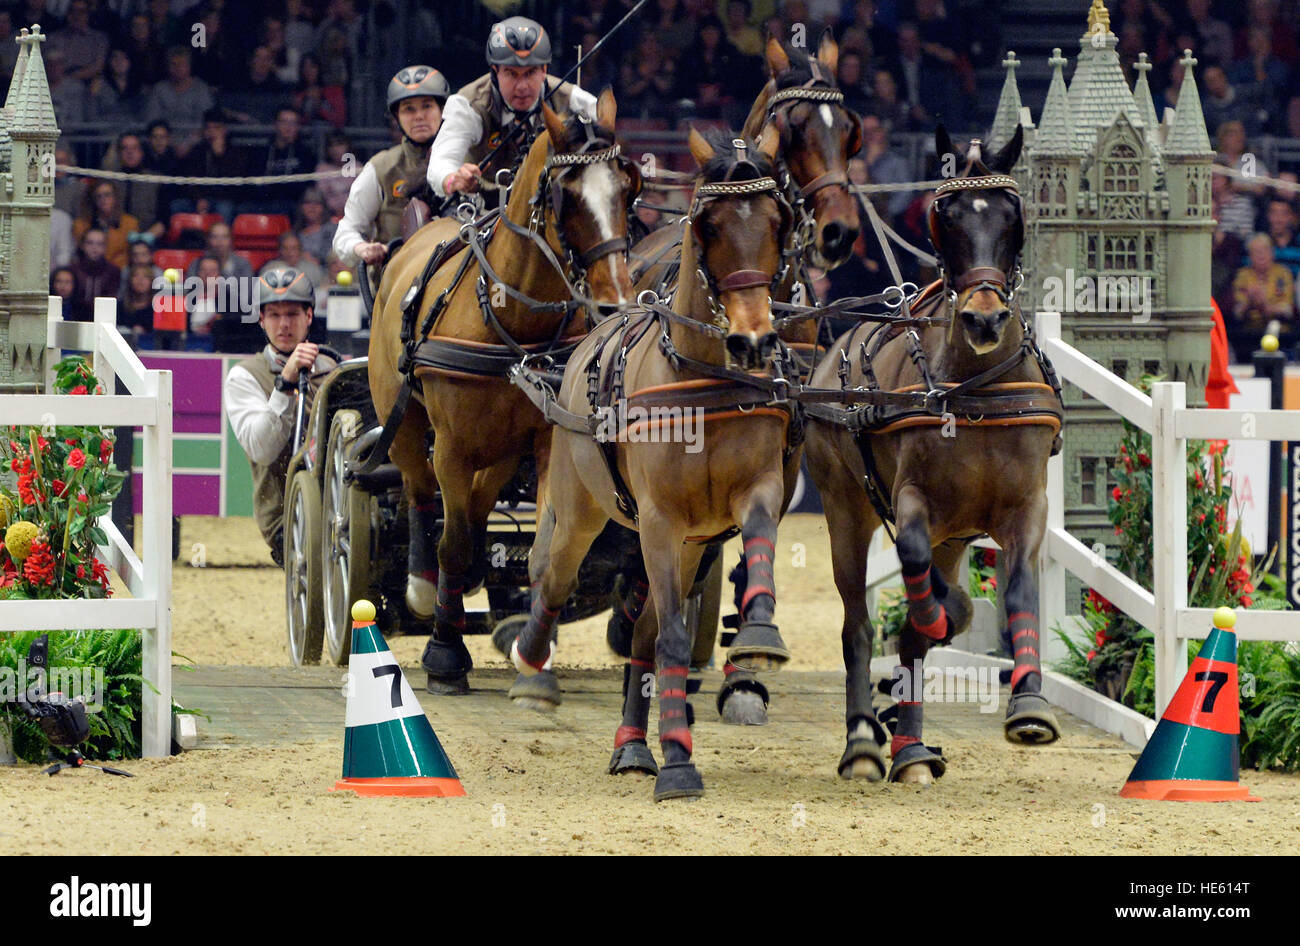 Londres, Reino Unido. 17 dic, 2016. Olympia London International Horse Show en el Grand Hall Olympia, Londres, Reino Imagen De Stock